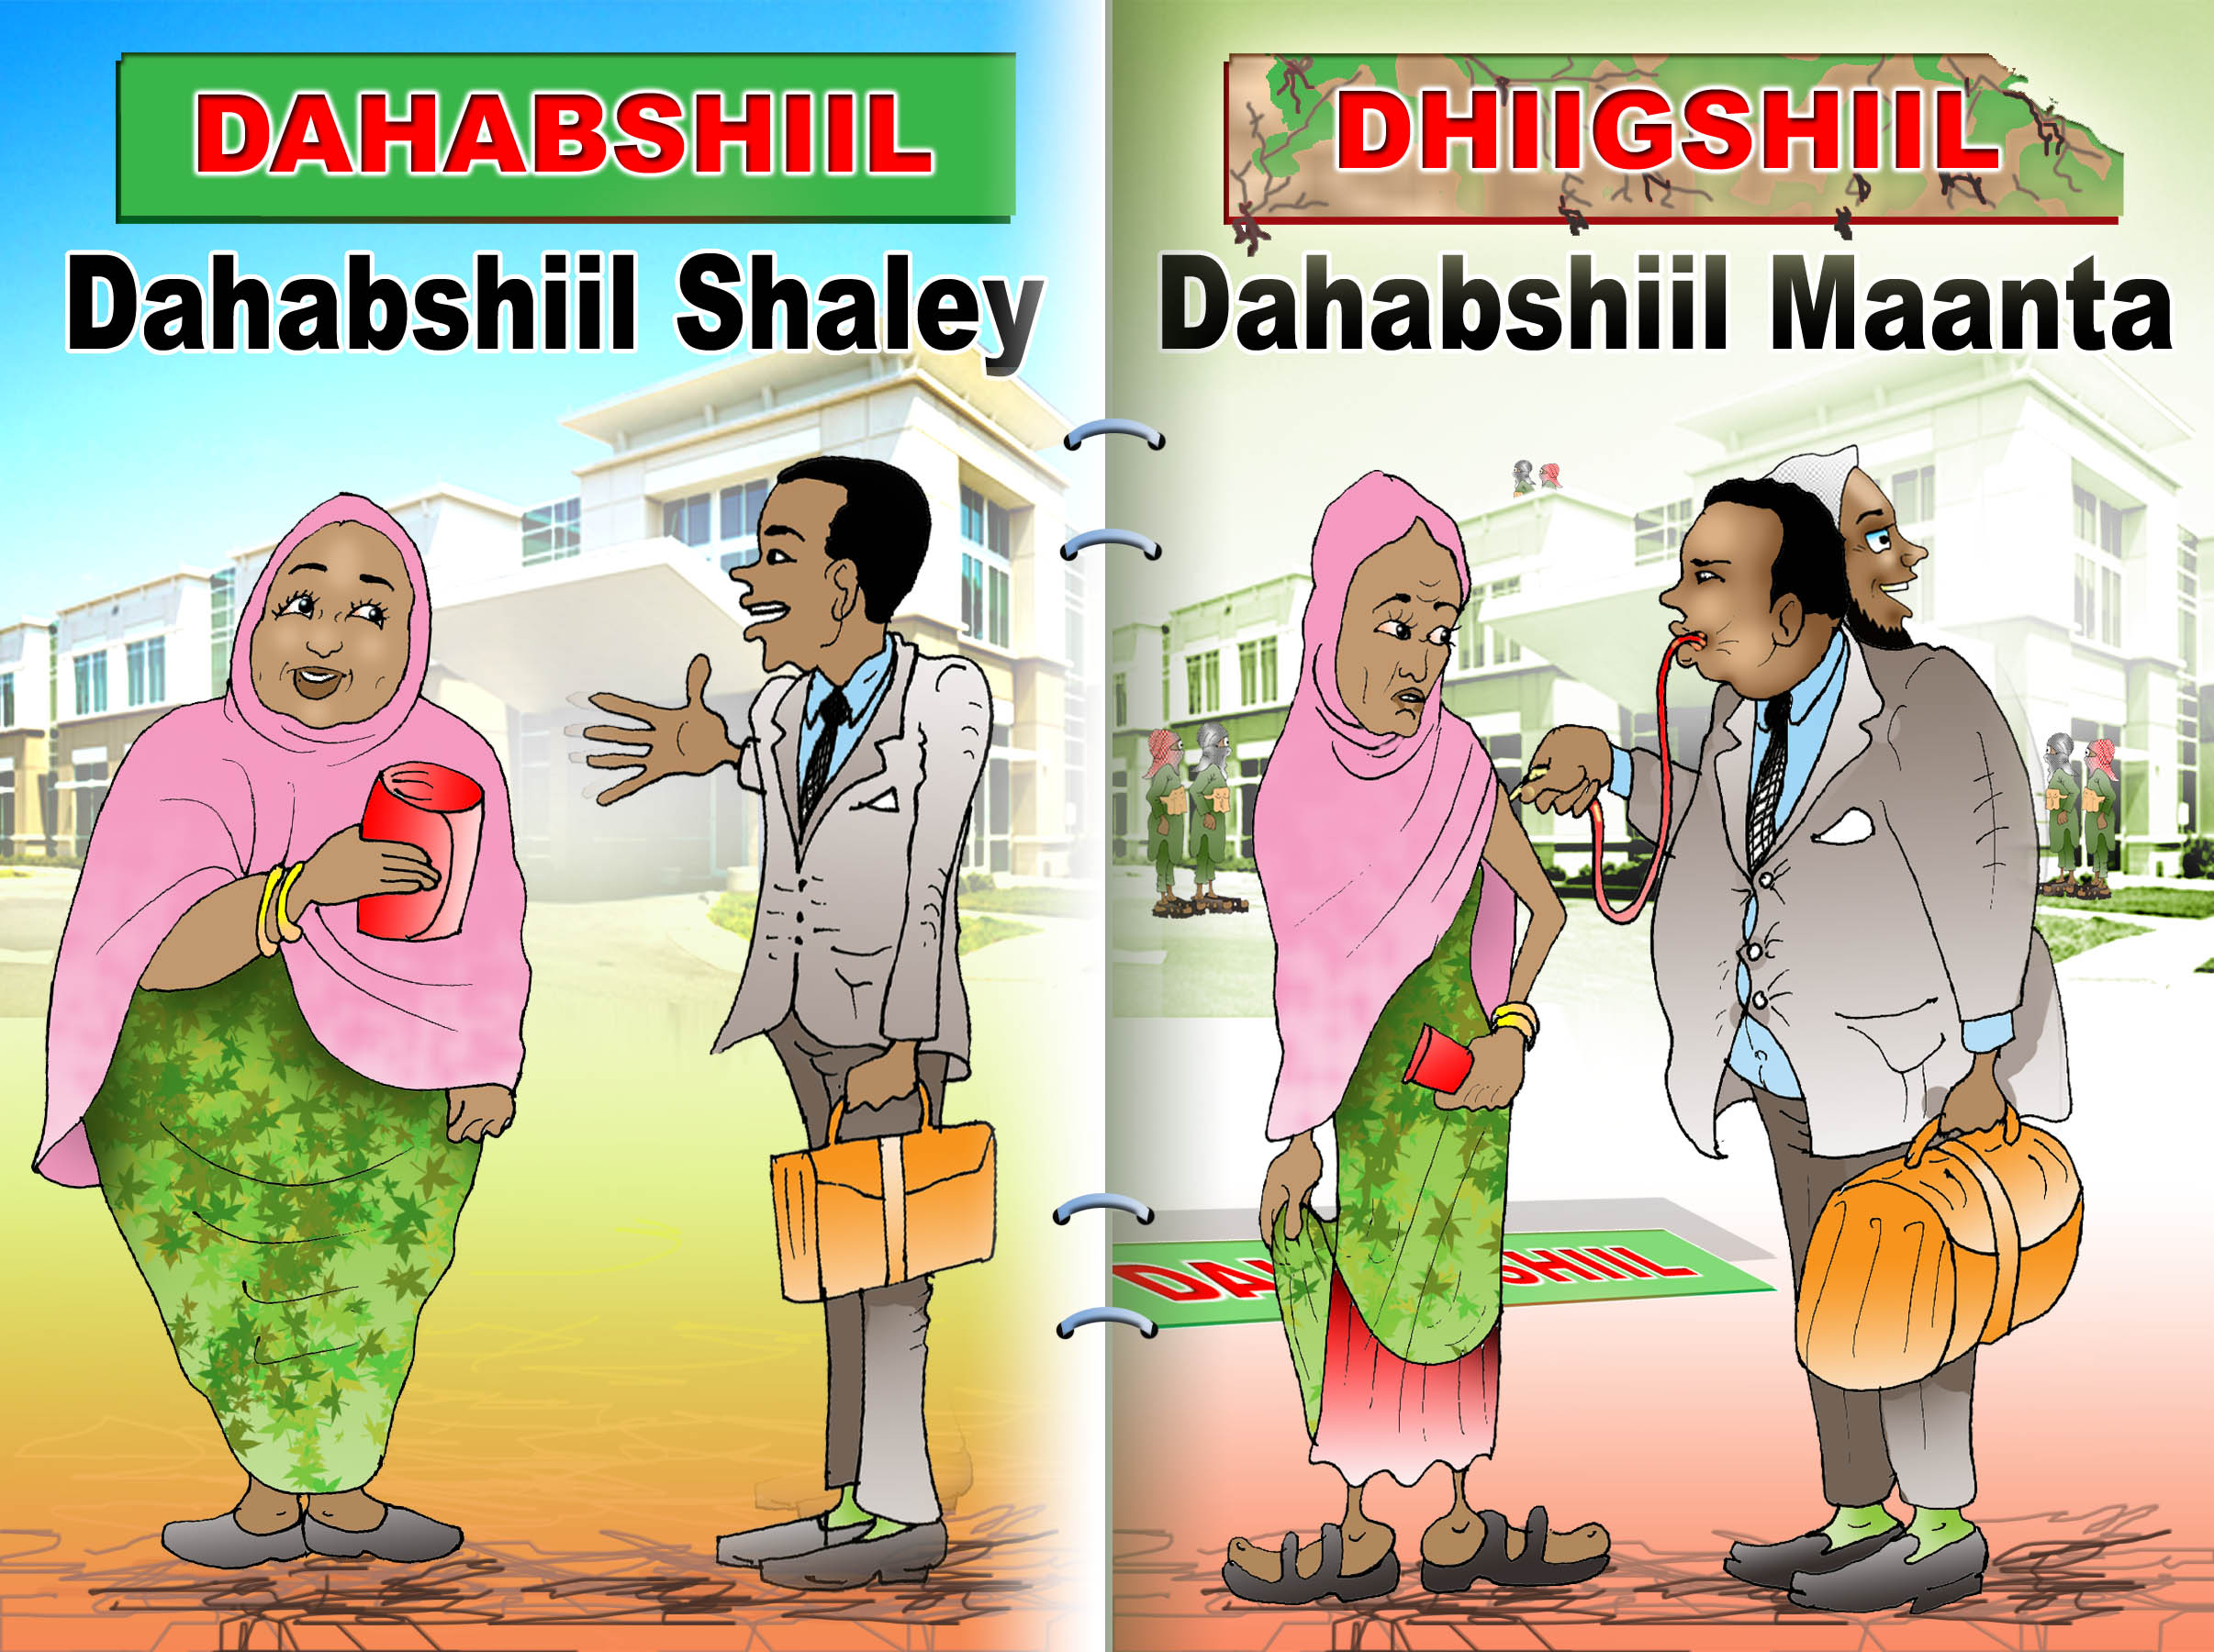 Dahabshiil closed for financing terrorism -News-kenya.com